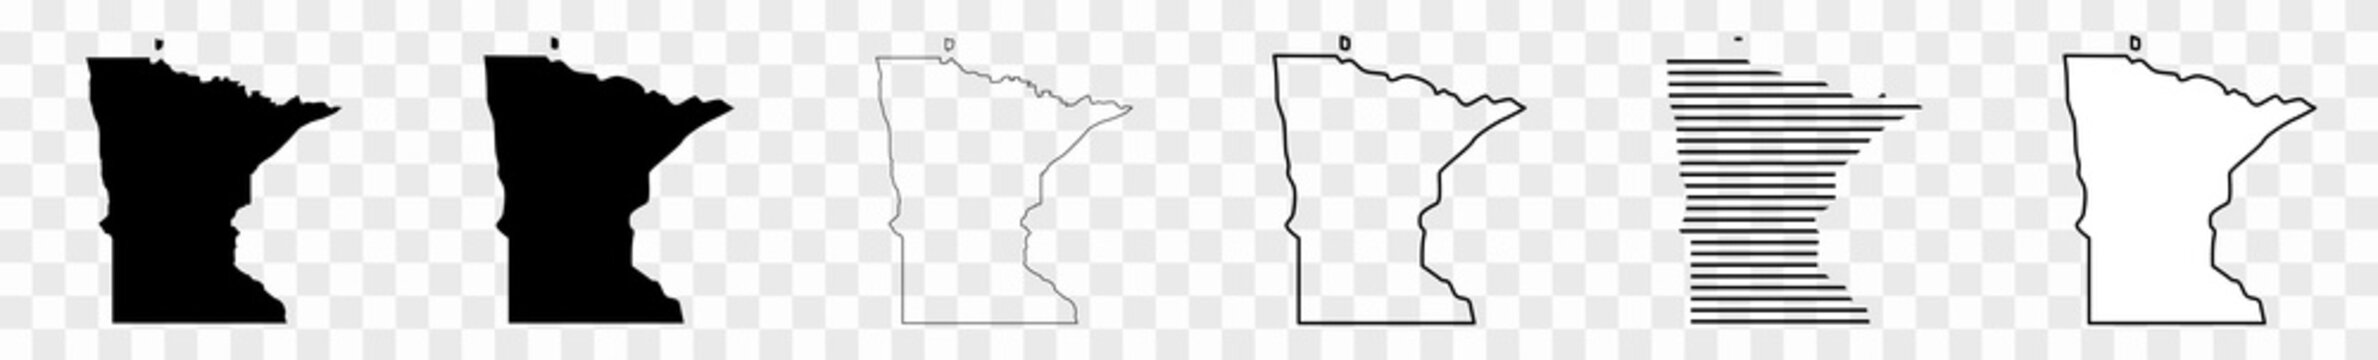 Minnesota Map Black | State Border | United States | US America | Transparent Isolated | Variations